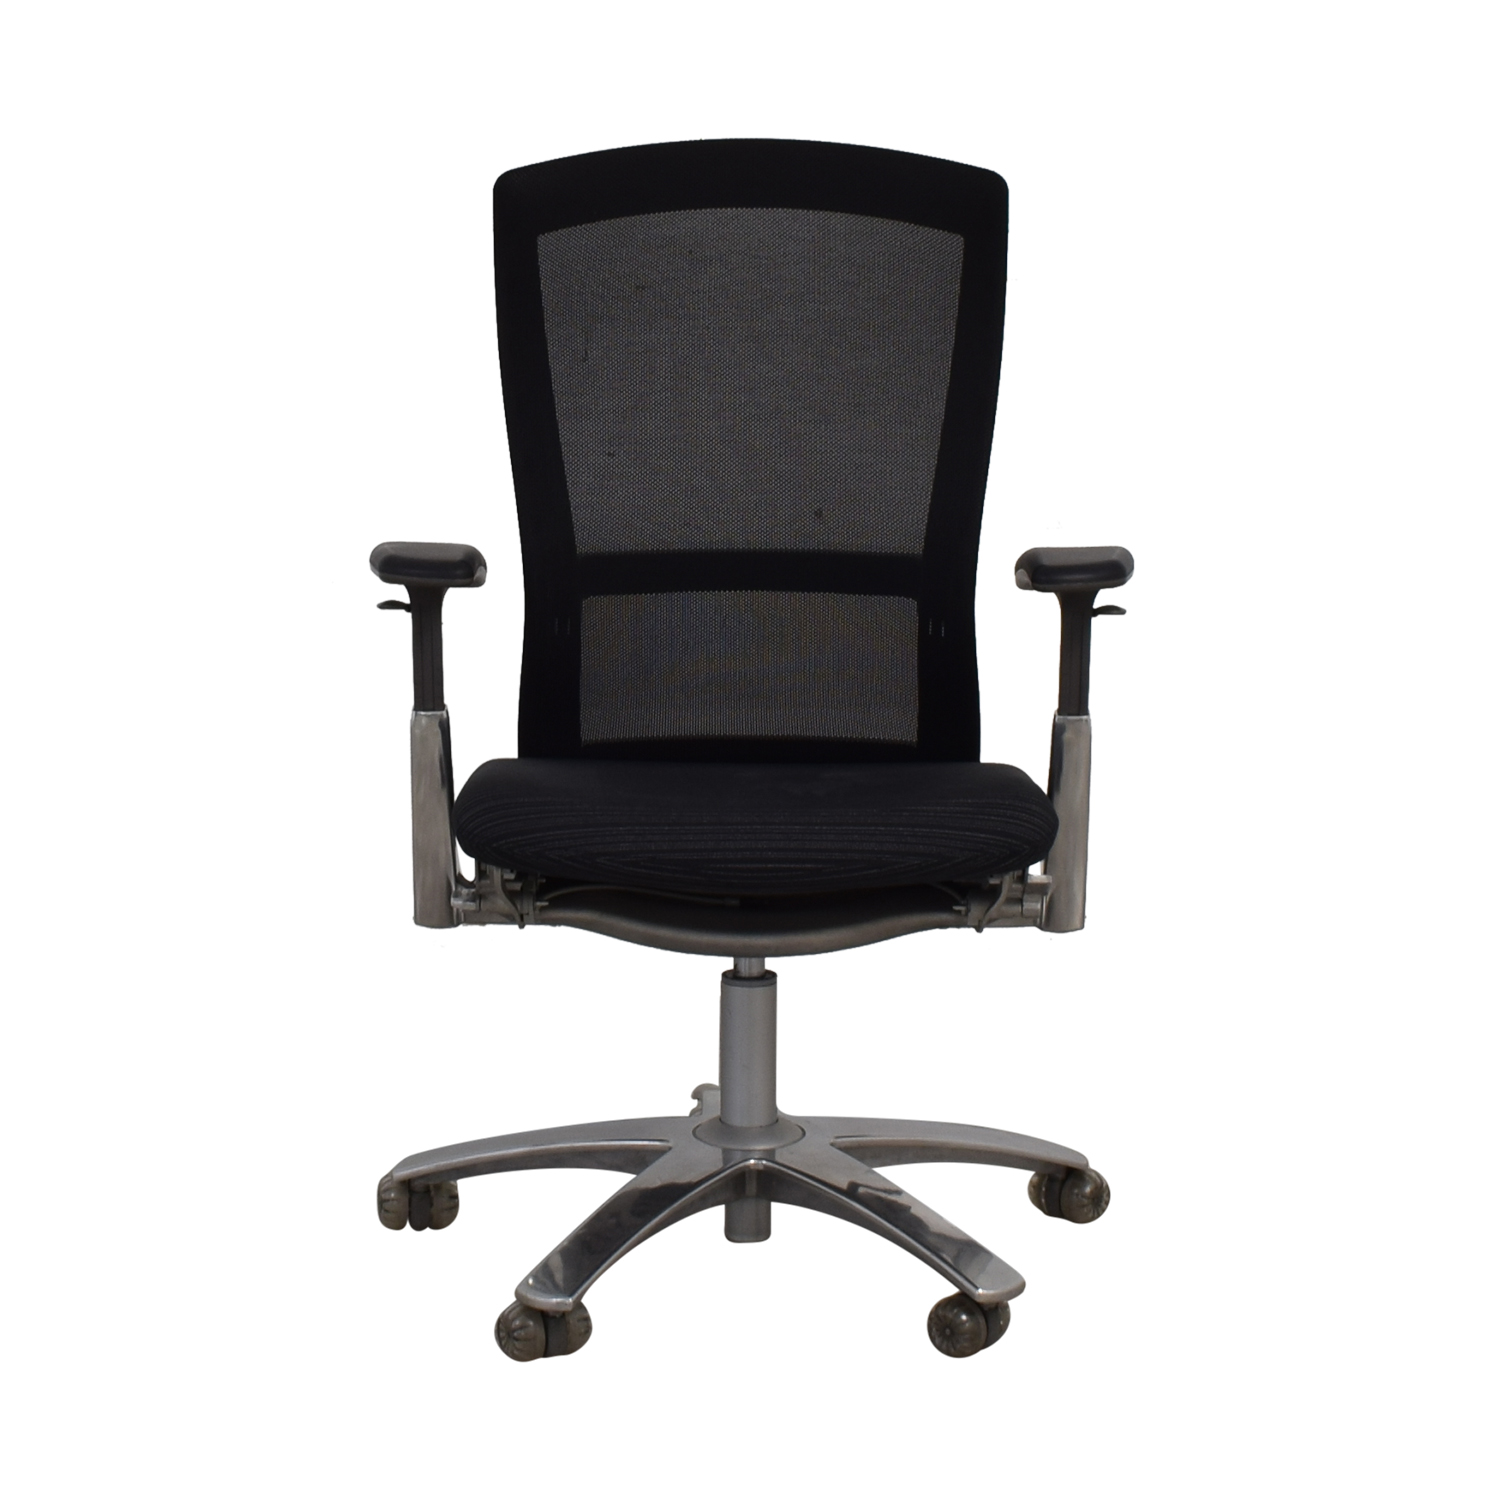 Knoll Knoll Life Black Striped Desk Chair